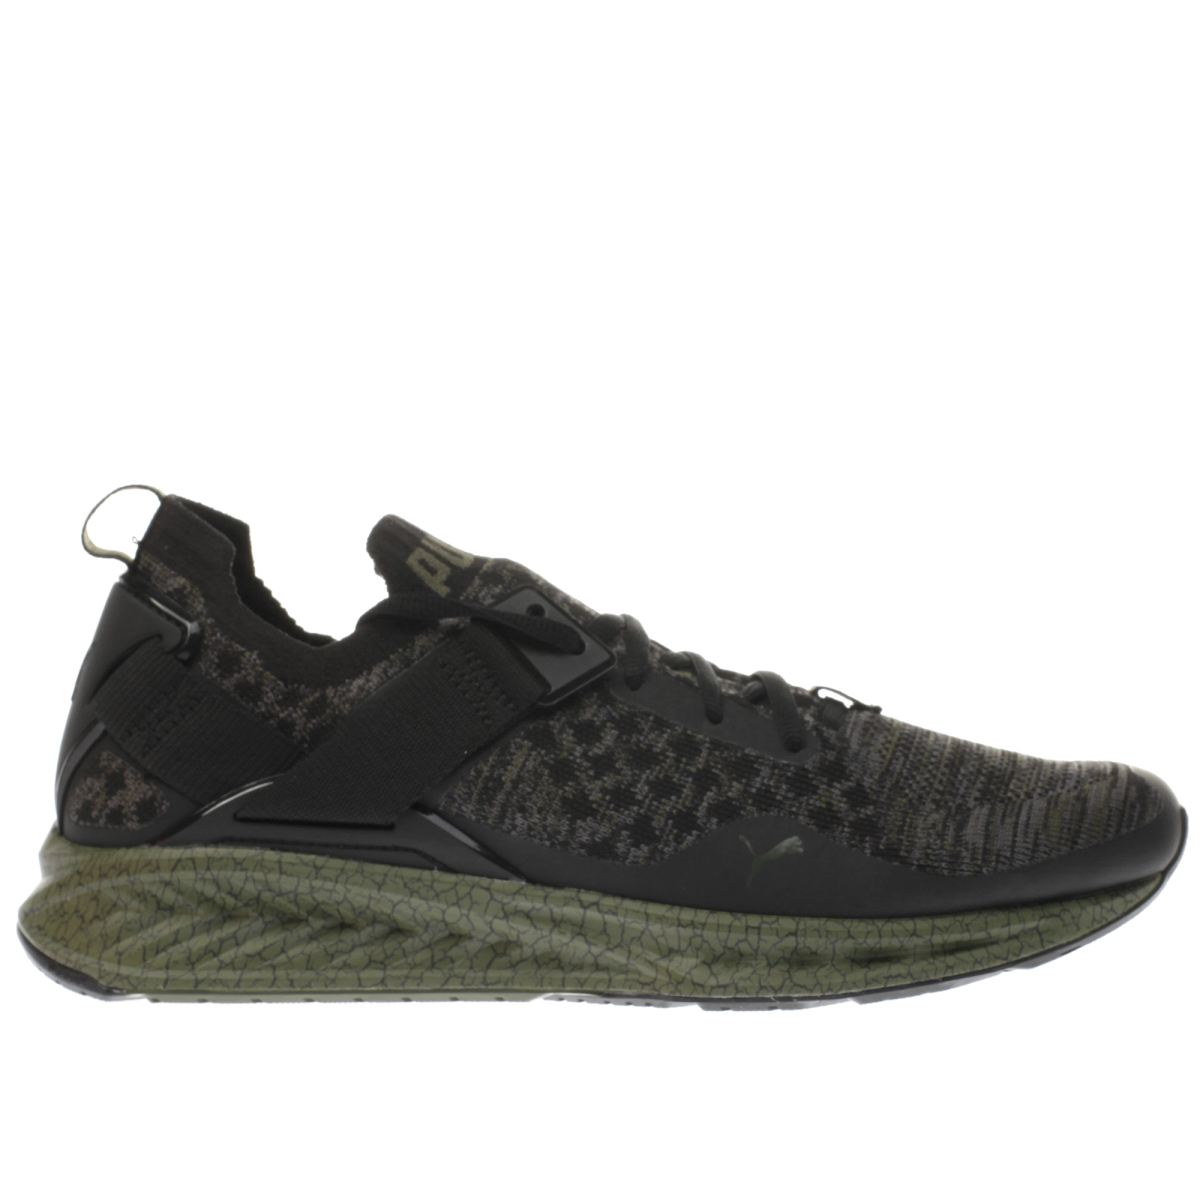 puma black & green ignite limitless evoknit trainers